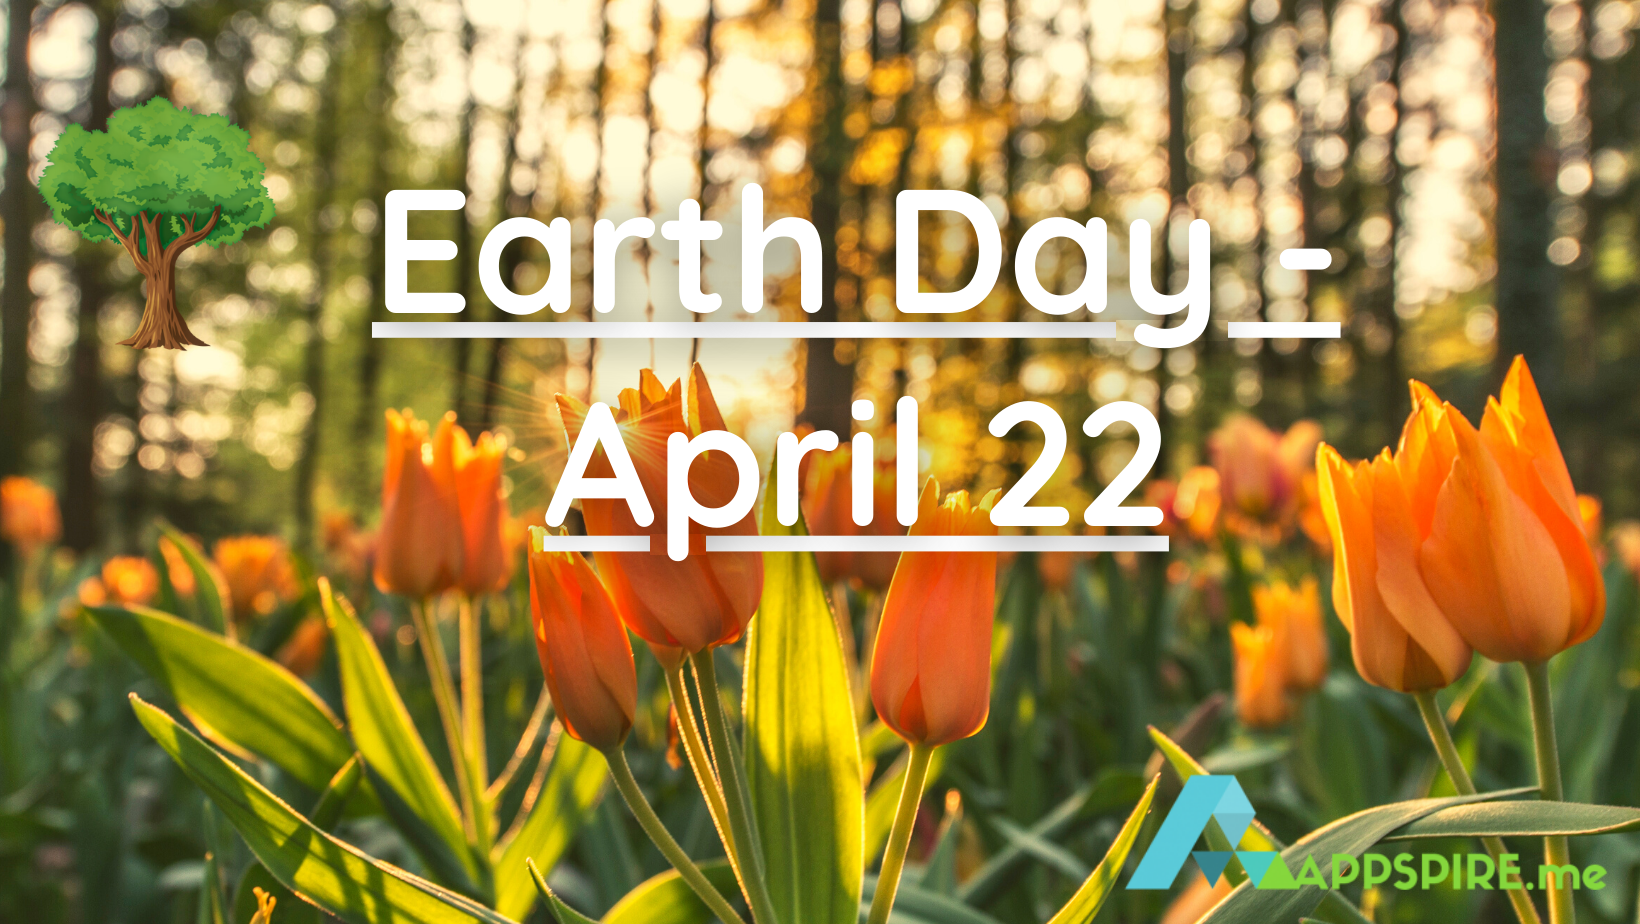 Earth Day is on Thursday, April 22, 2021